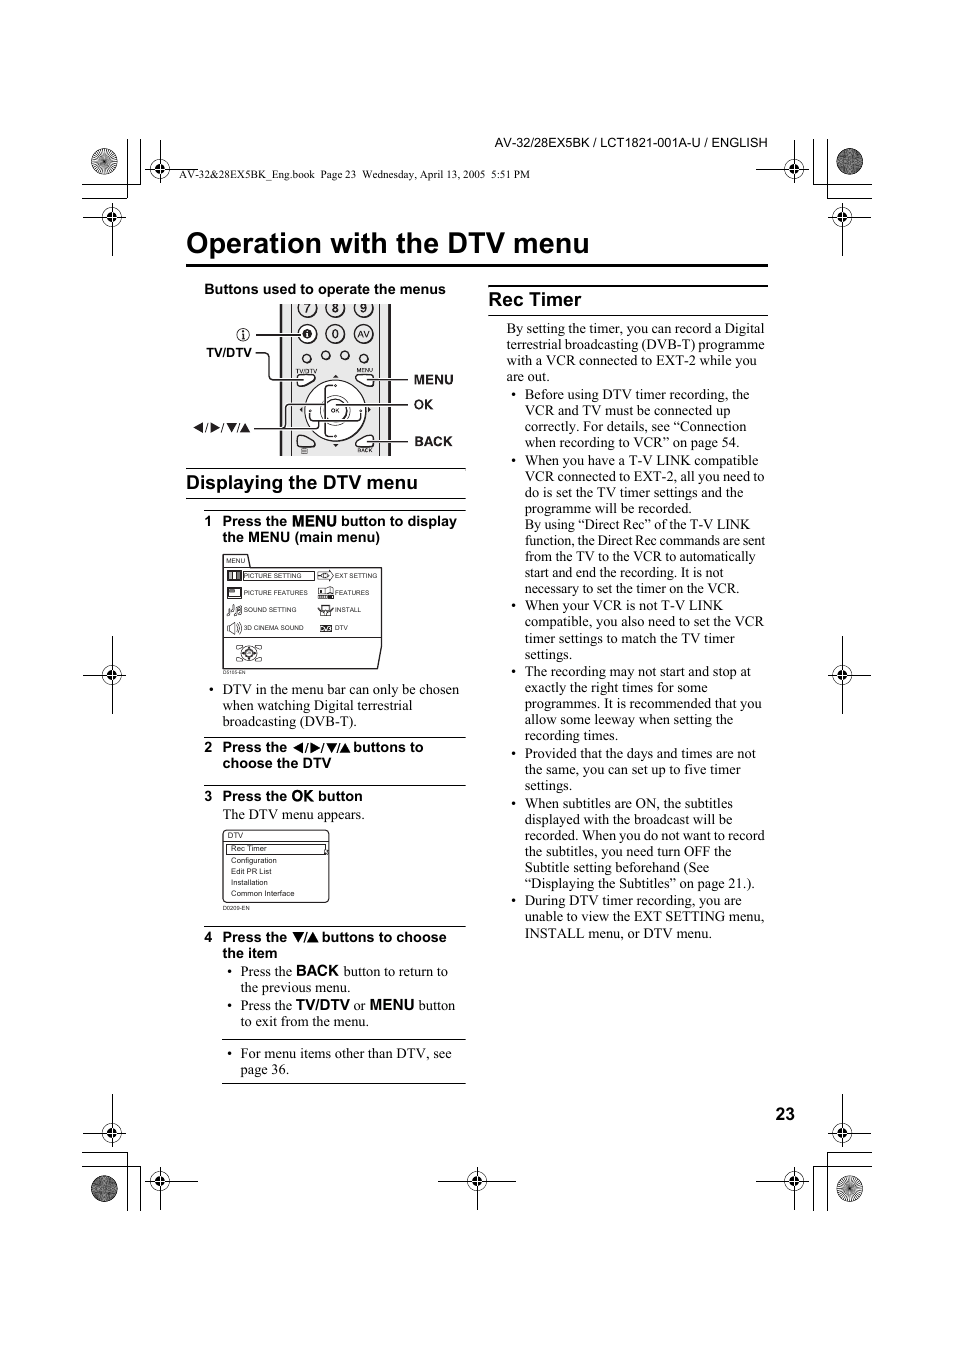 Operation with the dtv menu, Displaying the dtv menu, Rec